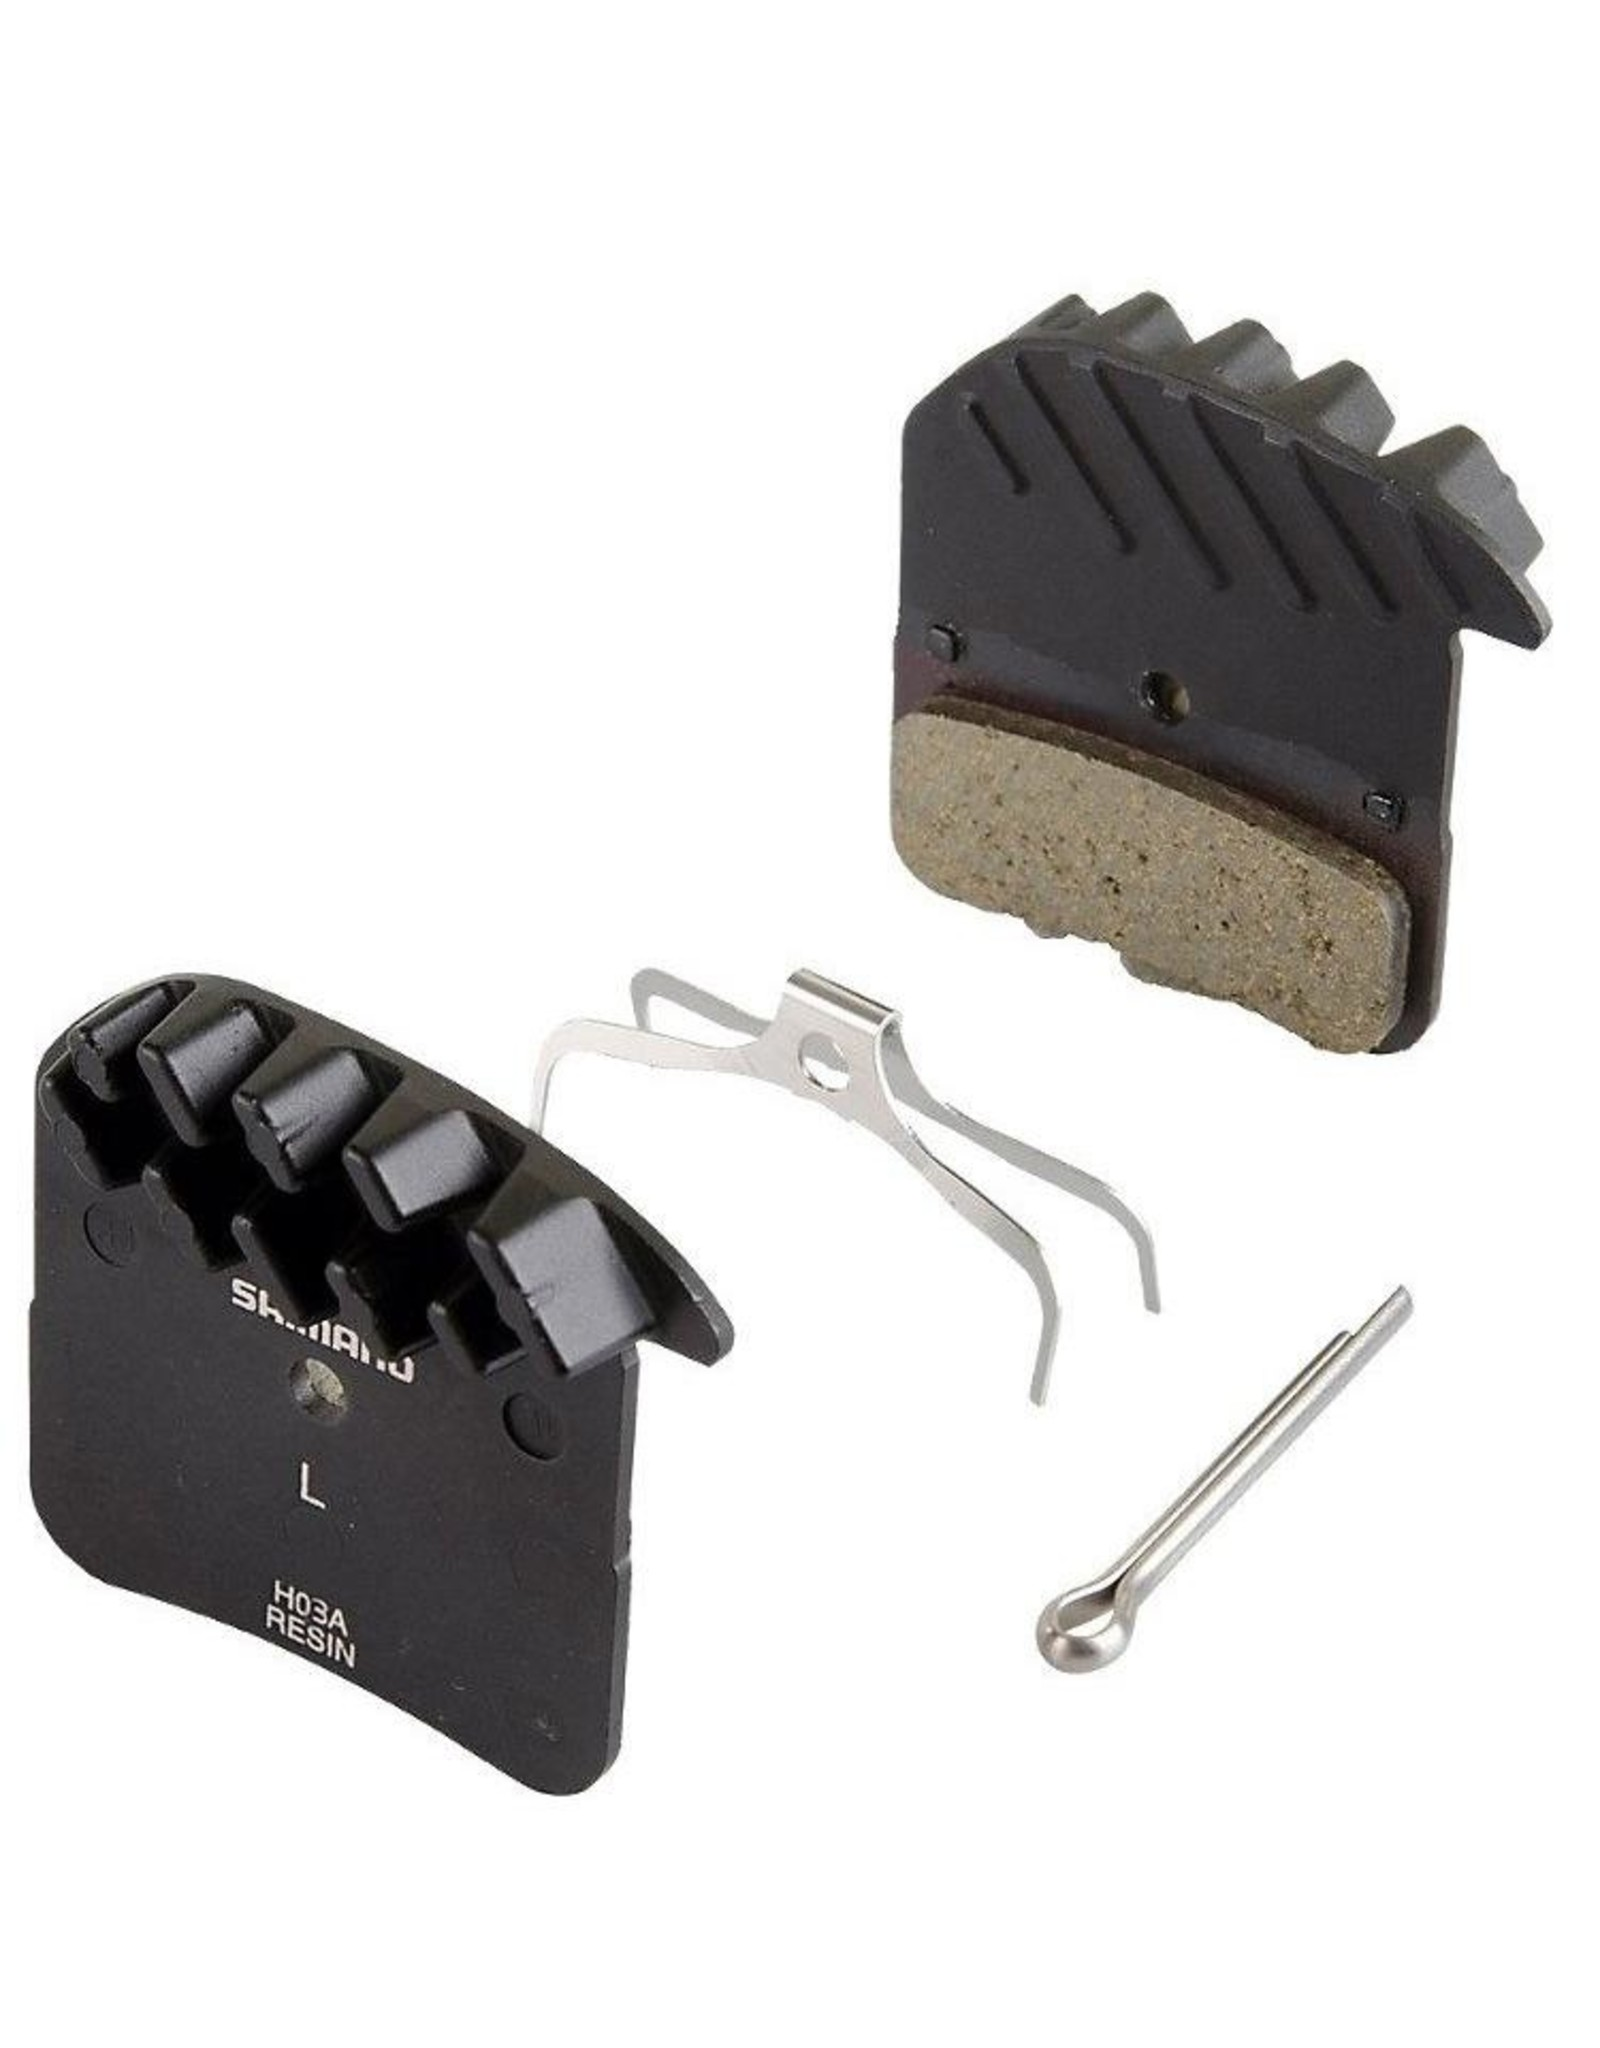 Shimano Shimano H03A Resin Disc Brake Pads and Spring with Fins